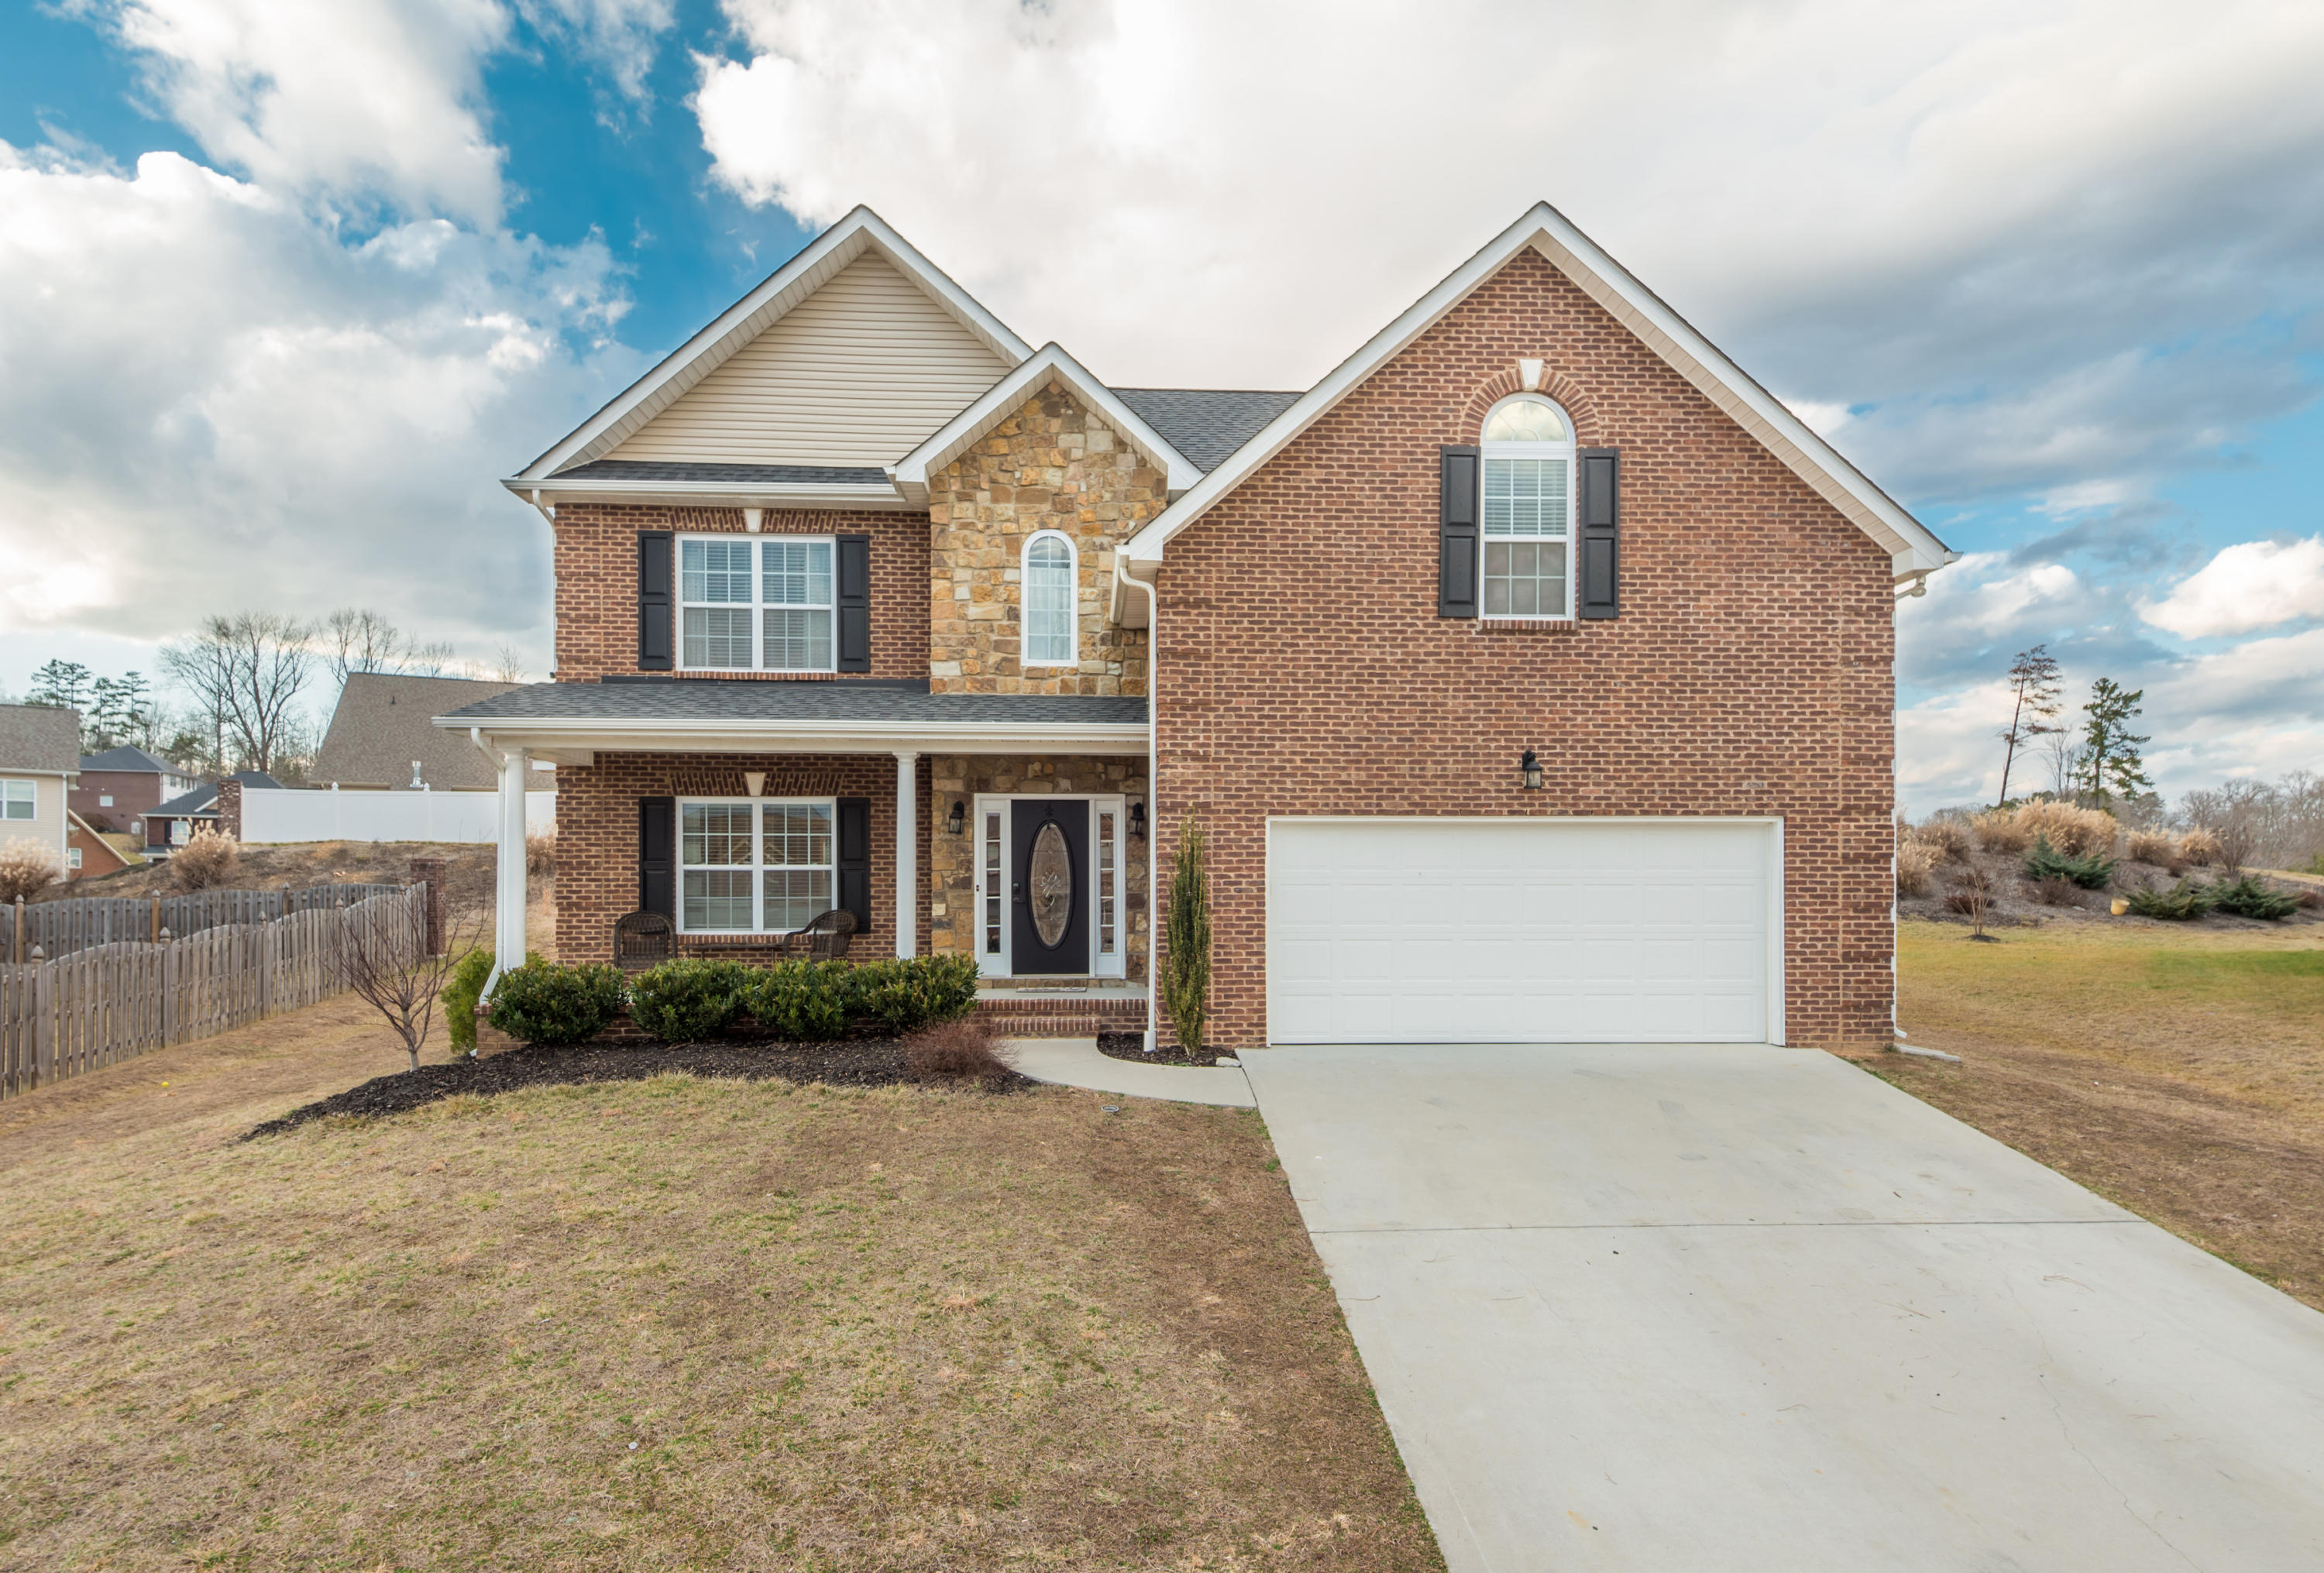 8529 Coral Sand, Knoxville, Tennessee, United States 37938, 5 Bedrooms Bedrooms, ,3 BathroomsBathrooms,Single Family,For Sale,Coral Sand,1112419